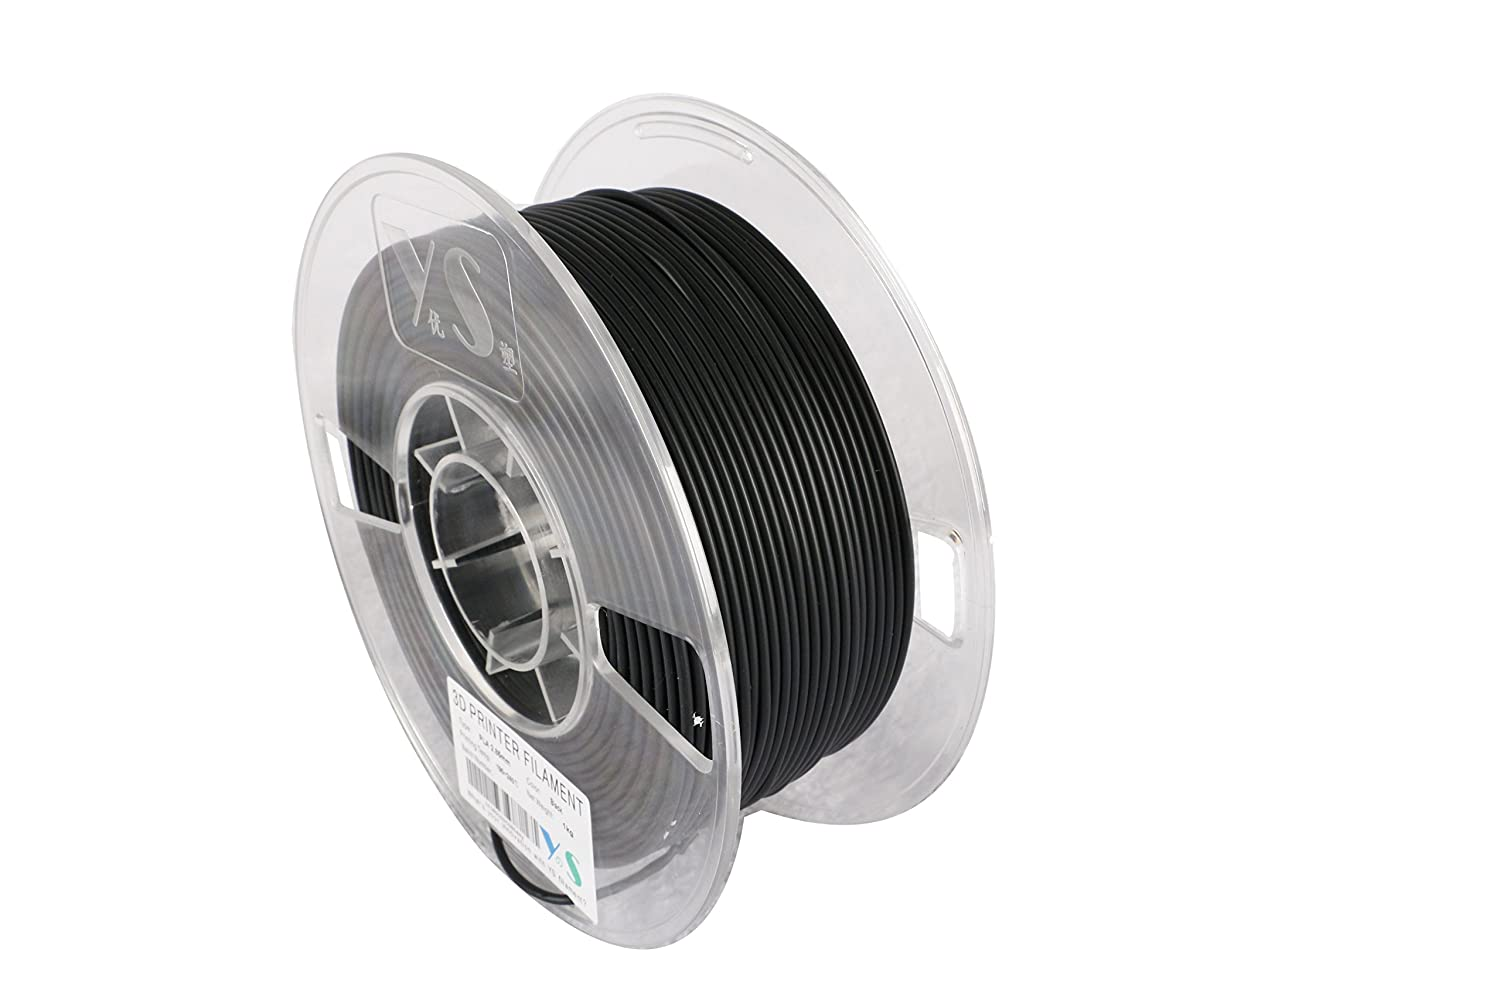 YS YS-PLA-BK-2.85-1.0  PLA Filament,  Compatible with Ultimaker/Airwolf/Luzbot 3D printer,  2.85 mm 1kg, Black Guangzhou Yousu Plastic Technology Co. Limited